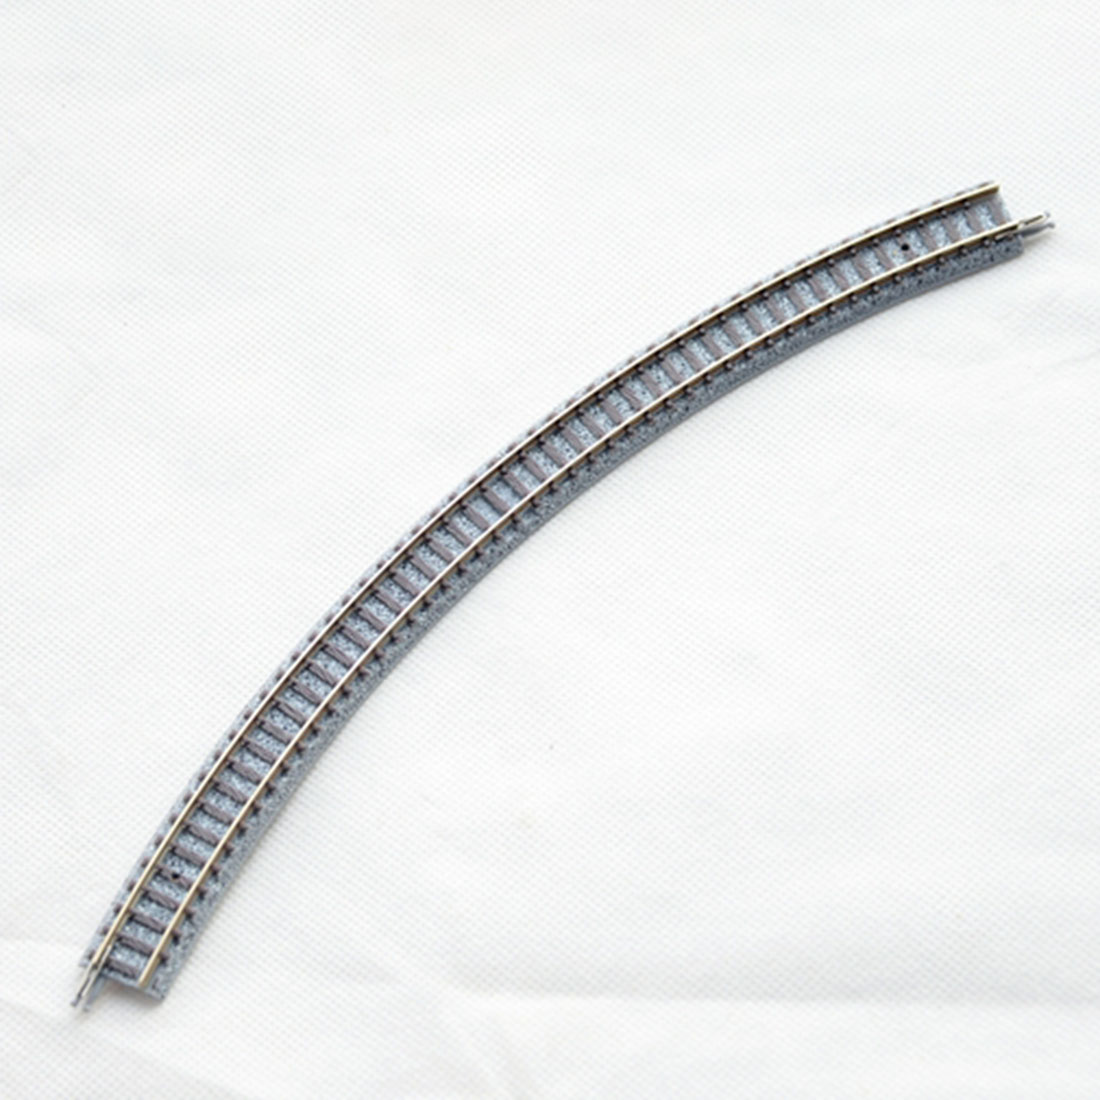 1:160 Train Track Model 1122 C317-45 Curved Track of 9mm Track Gauge for N-scale image